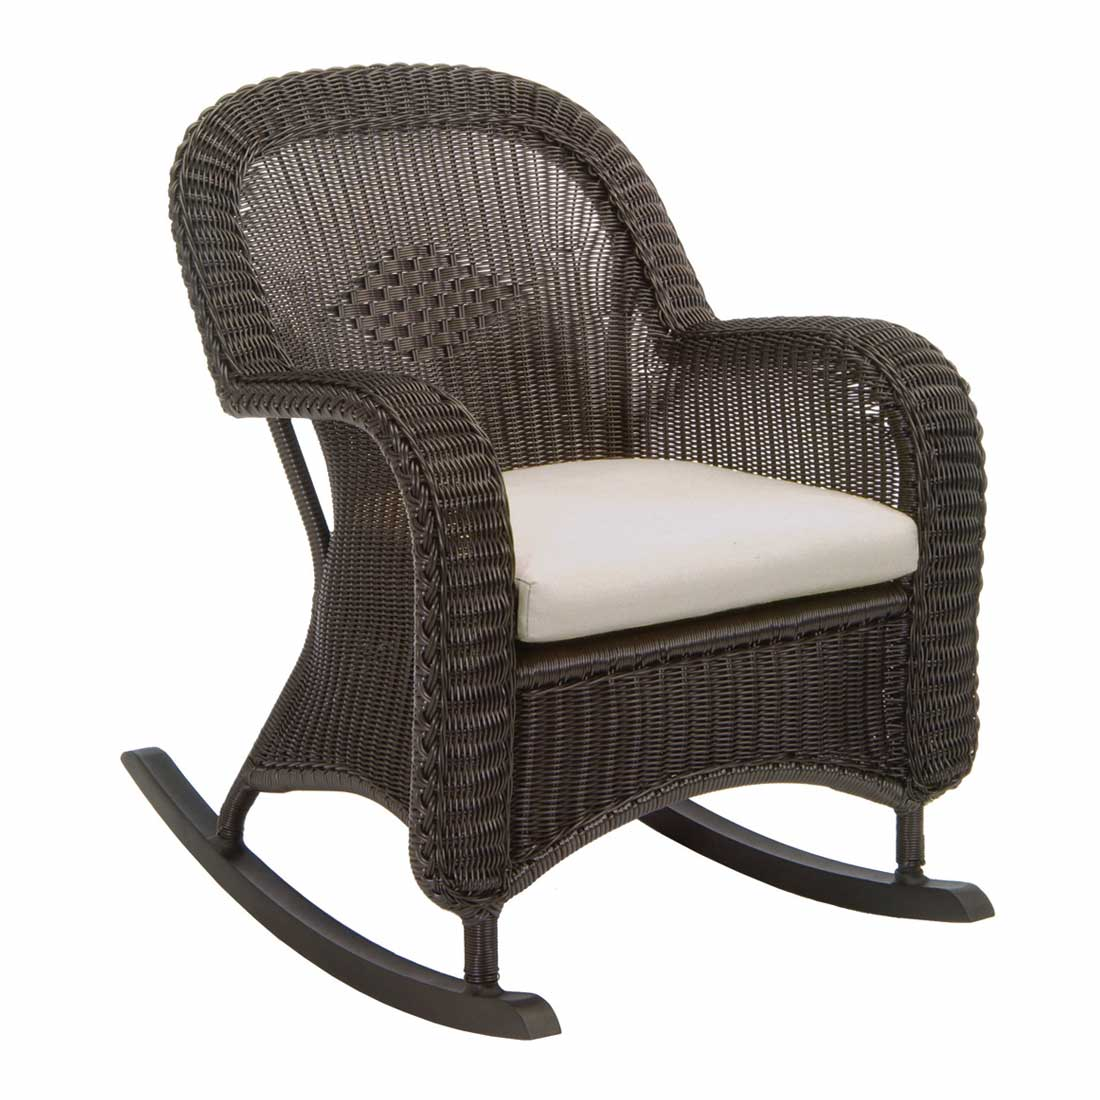 Black Wicker Rocking Chairs Classic Outdoor Wicker Rocking Chair